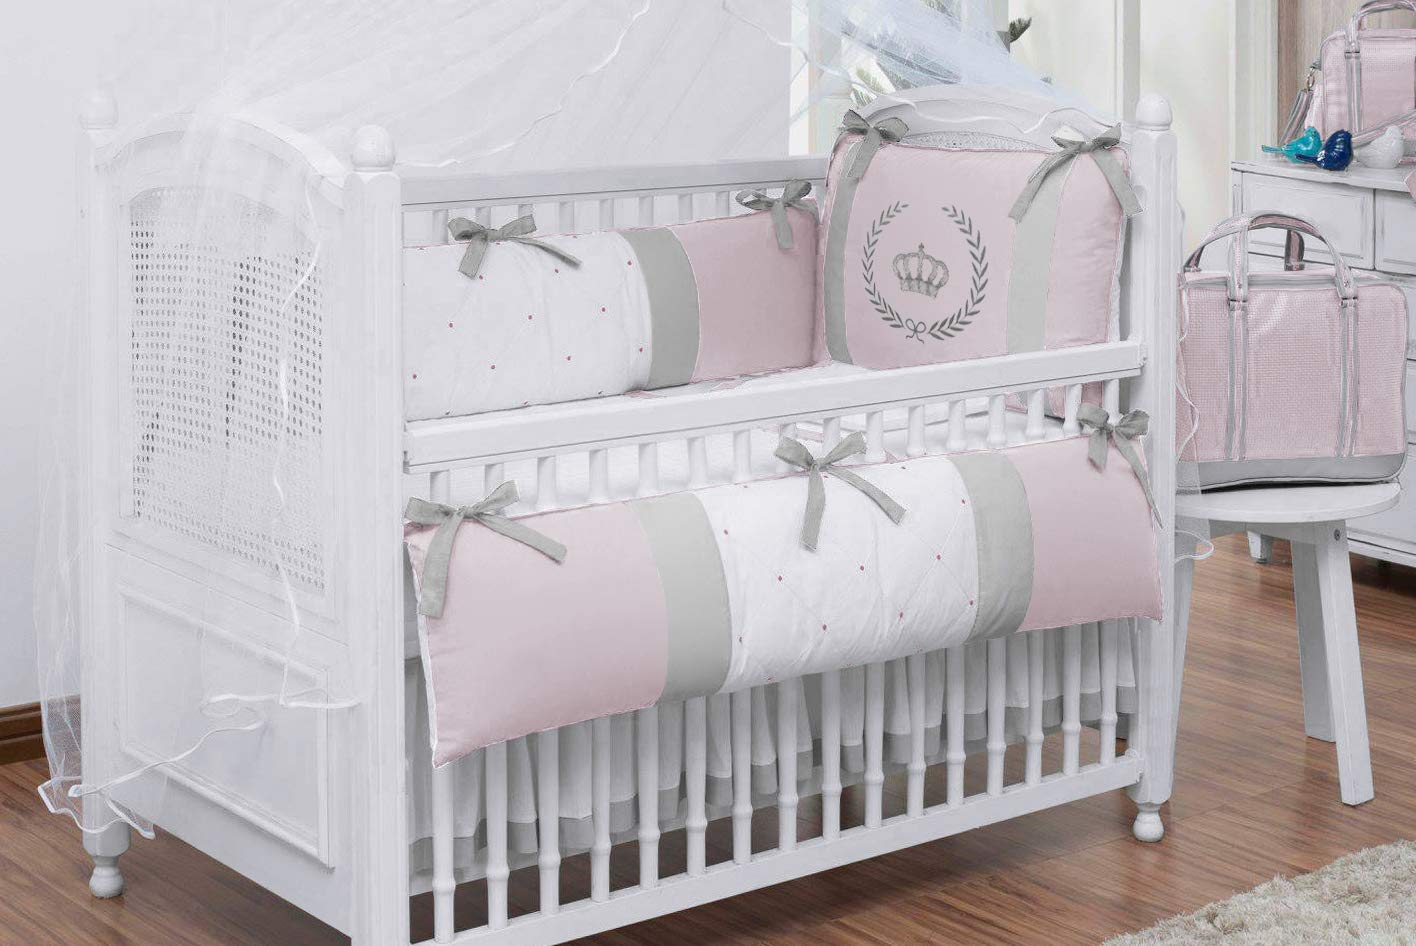 4 Things to Consider While Shopping for Baby Bedding Sets Online